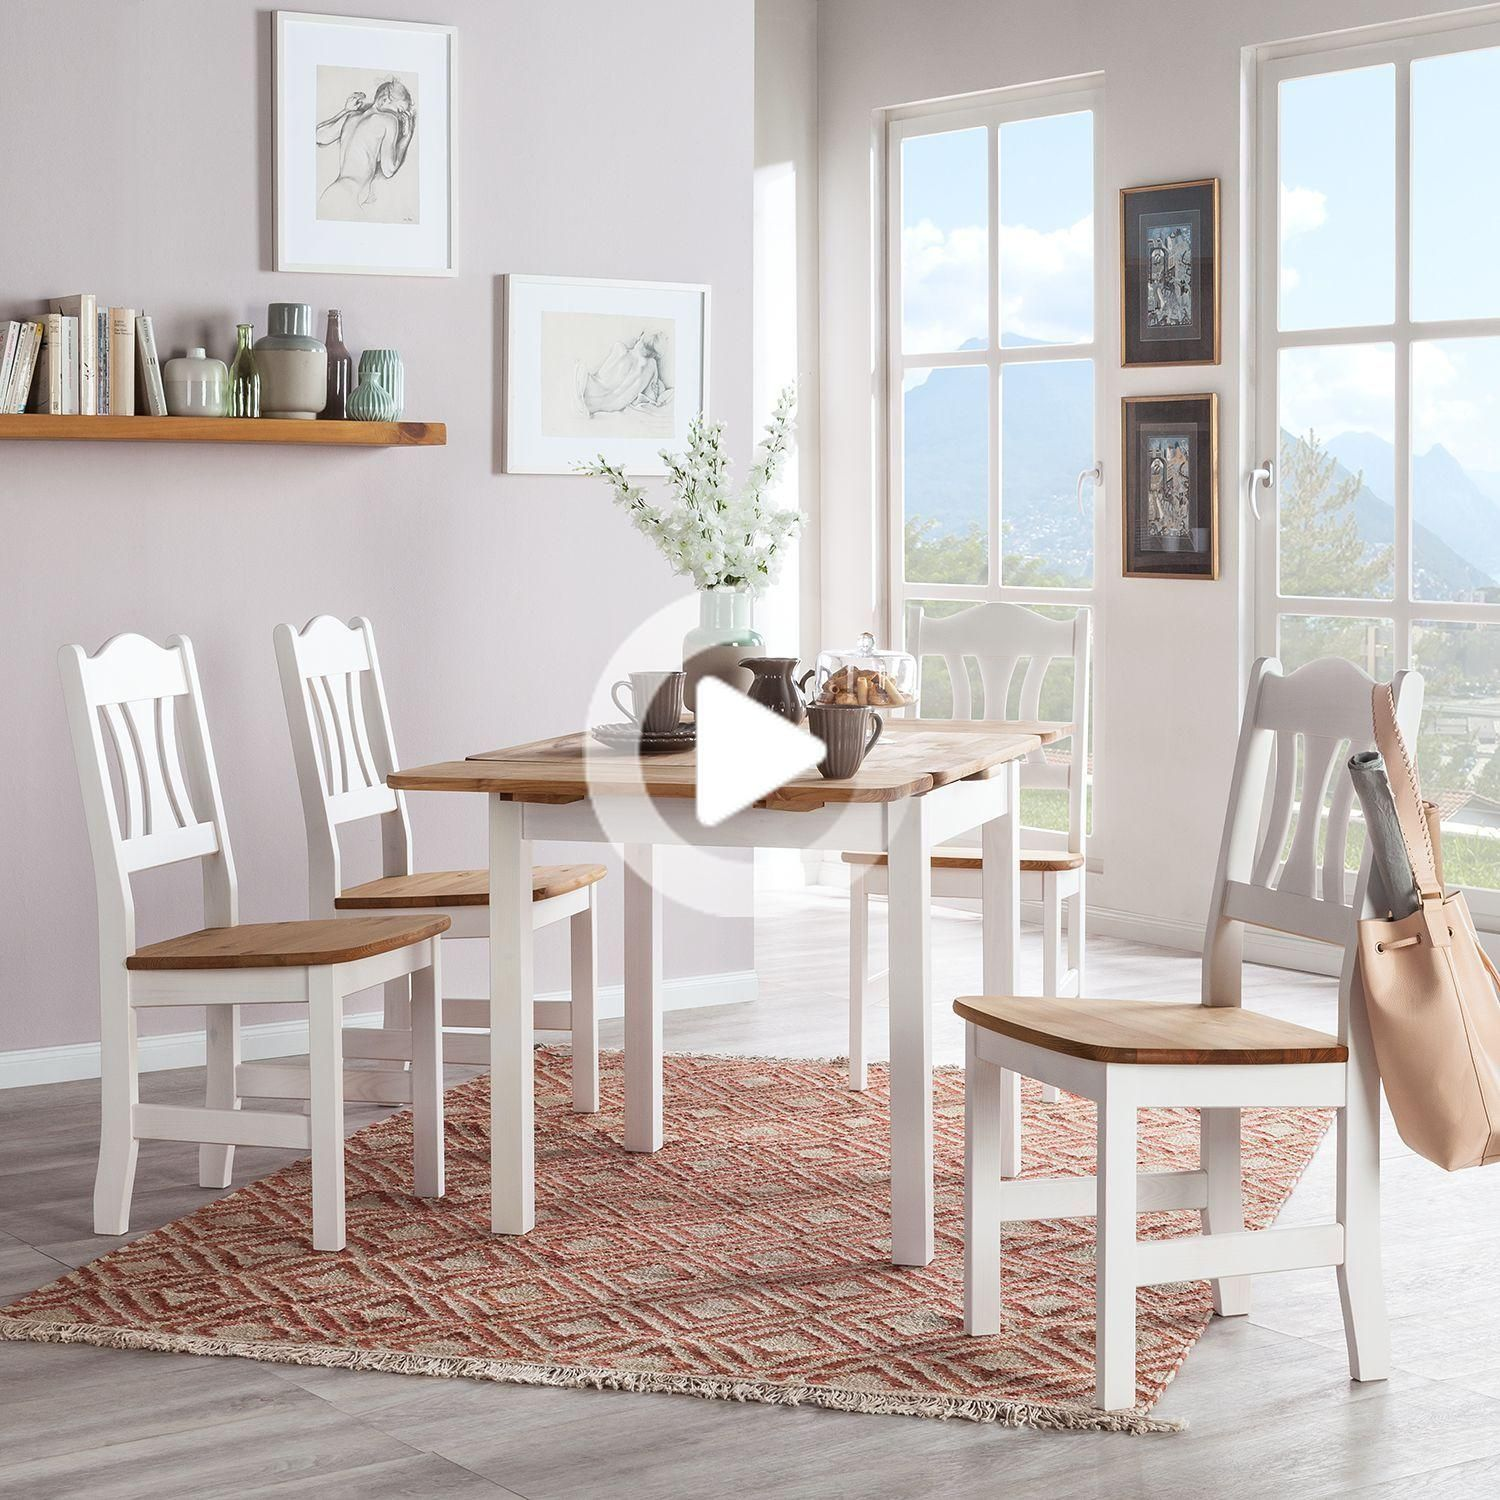 Bastide dining table 9 parts   Dining table, Dining chairs, Home ...